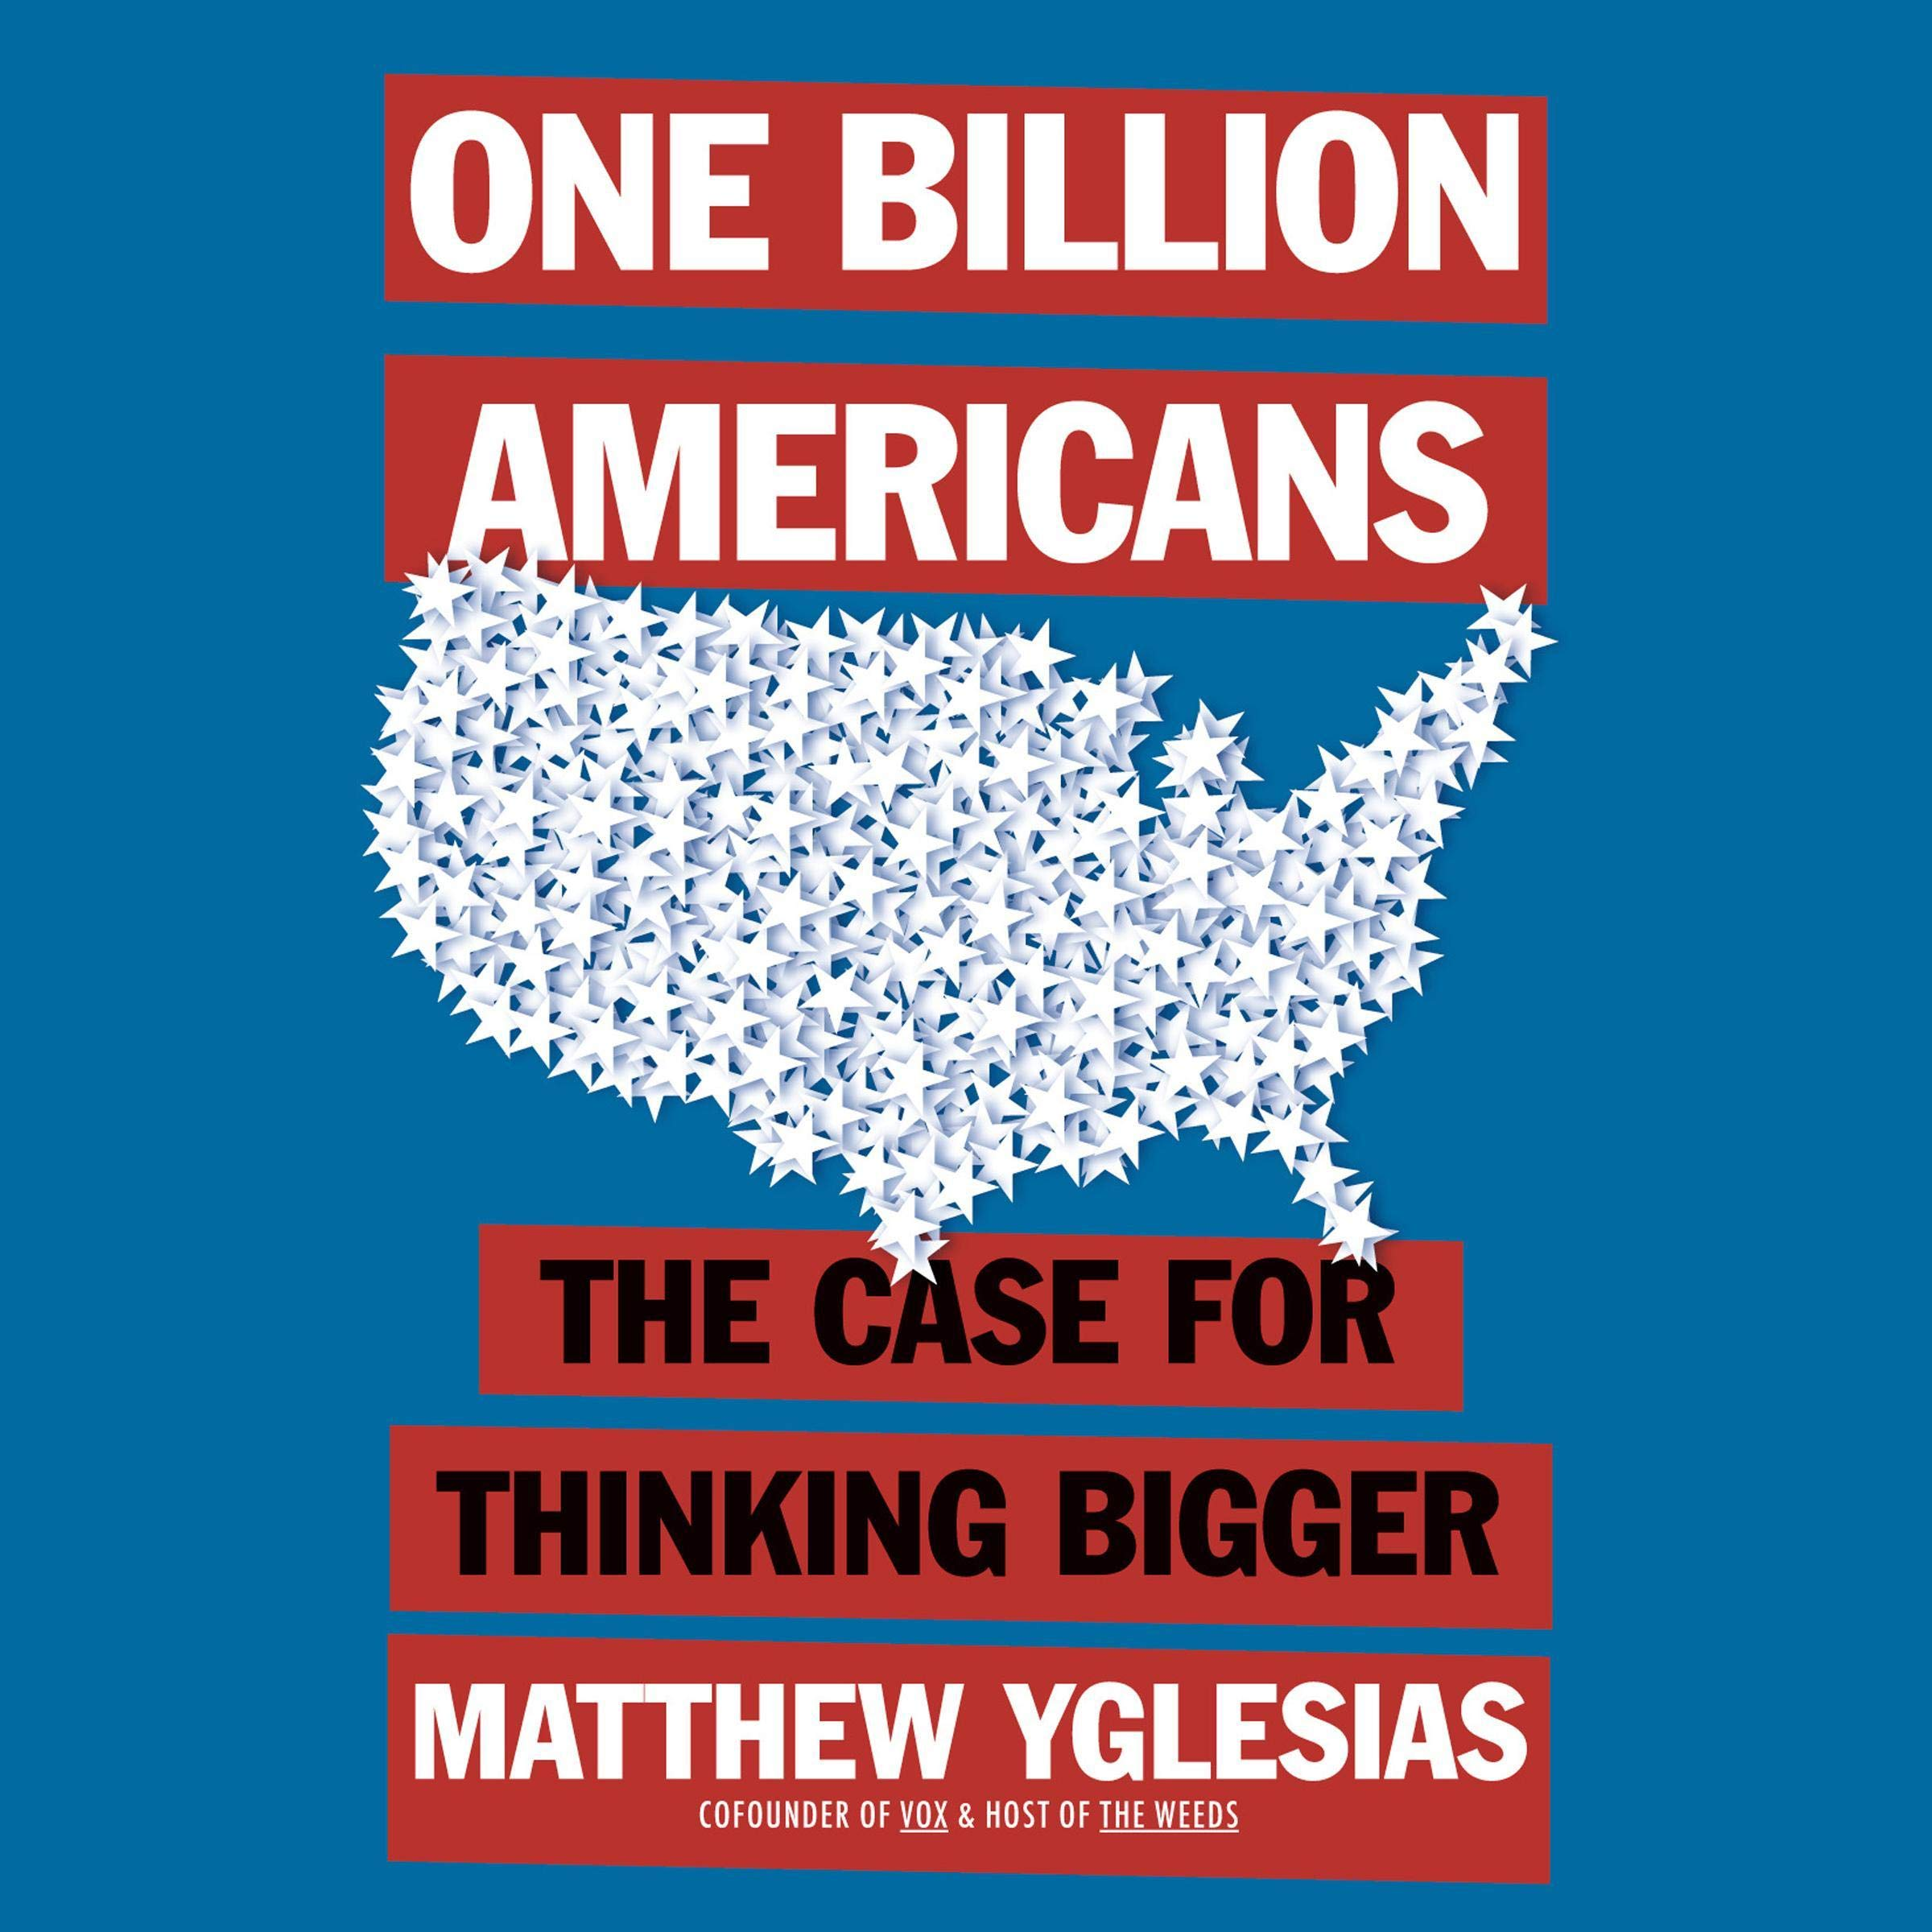 Image OfOne Billion Americans: The Case For Thinking Bigger